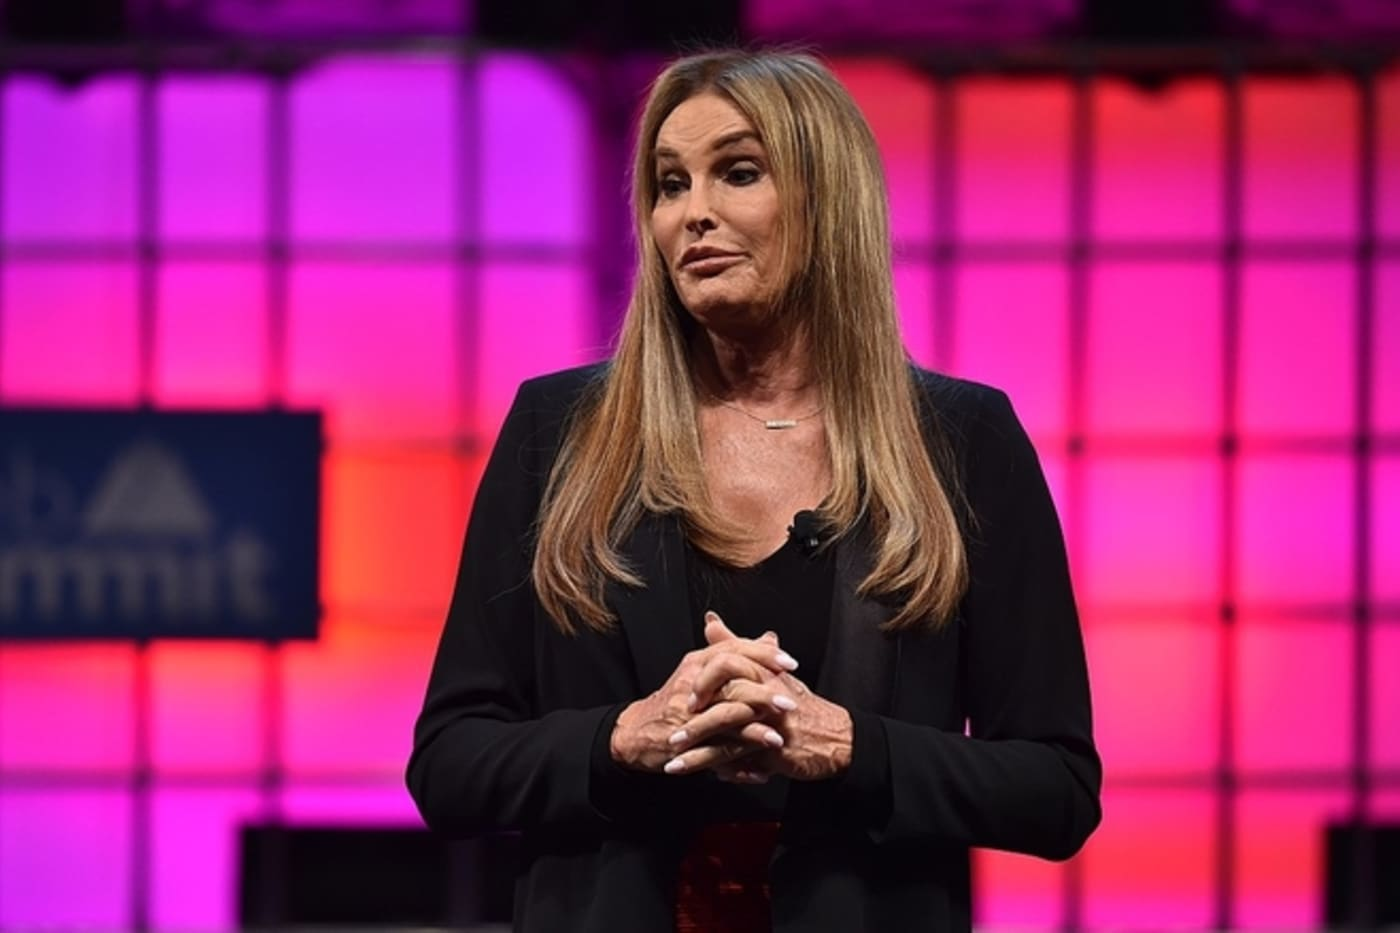 Caitlyn Jenner at the Web Summit 2017 at Altice Arena